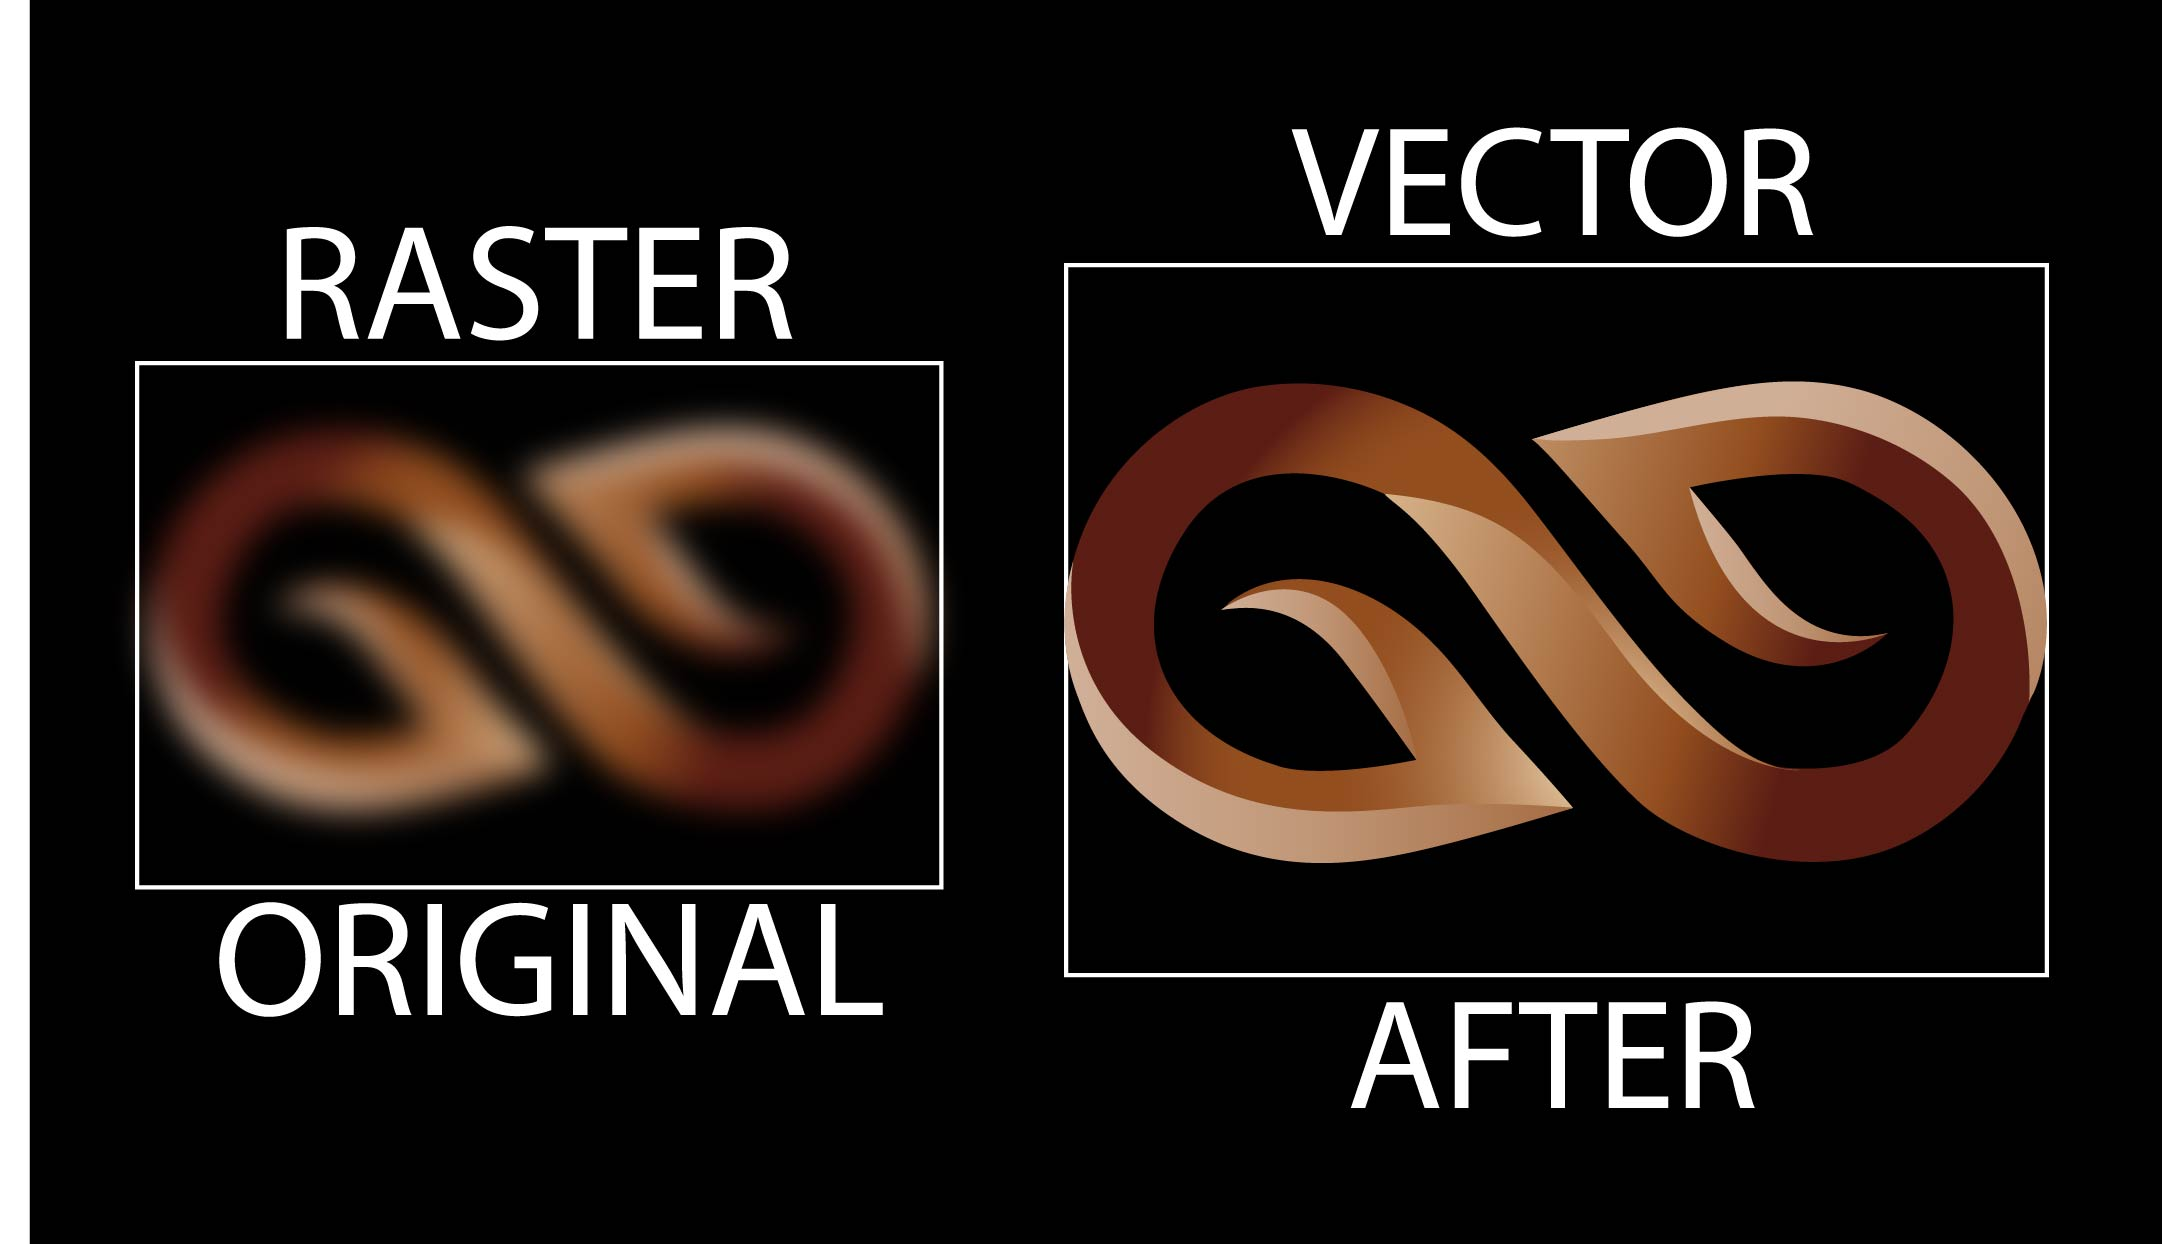 Convert To Vector Any Logo Or Image Asap